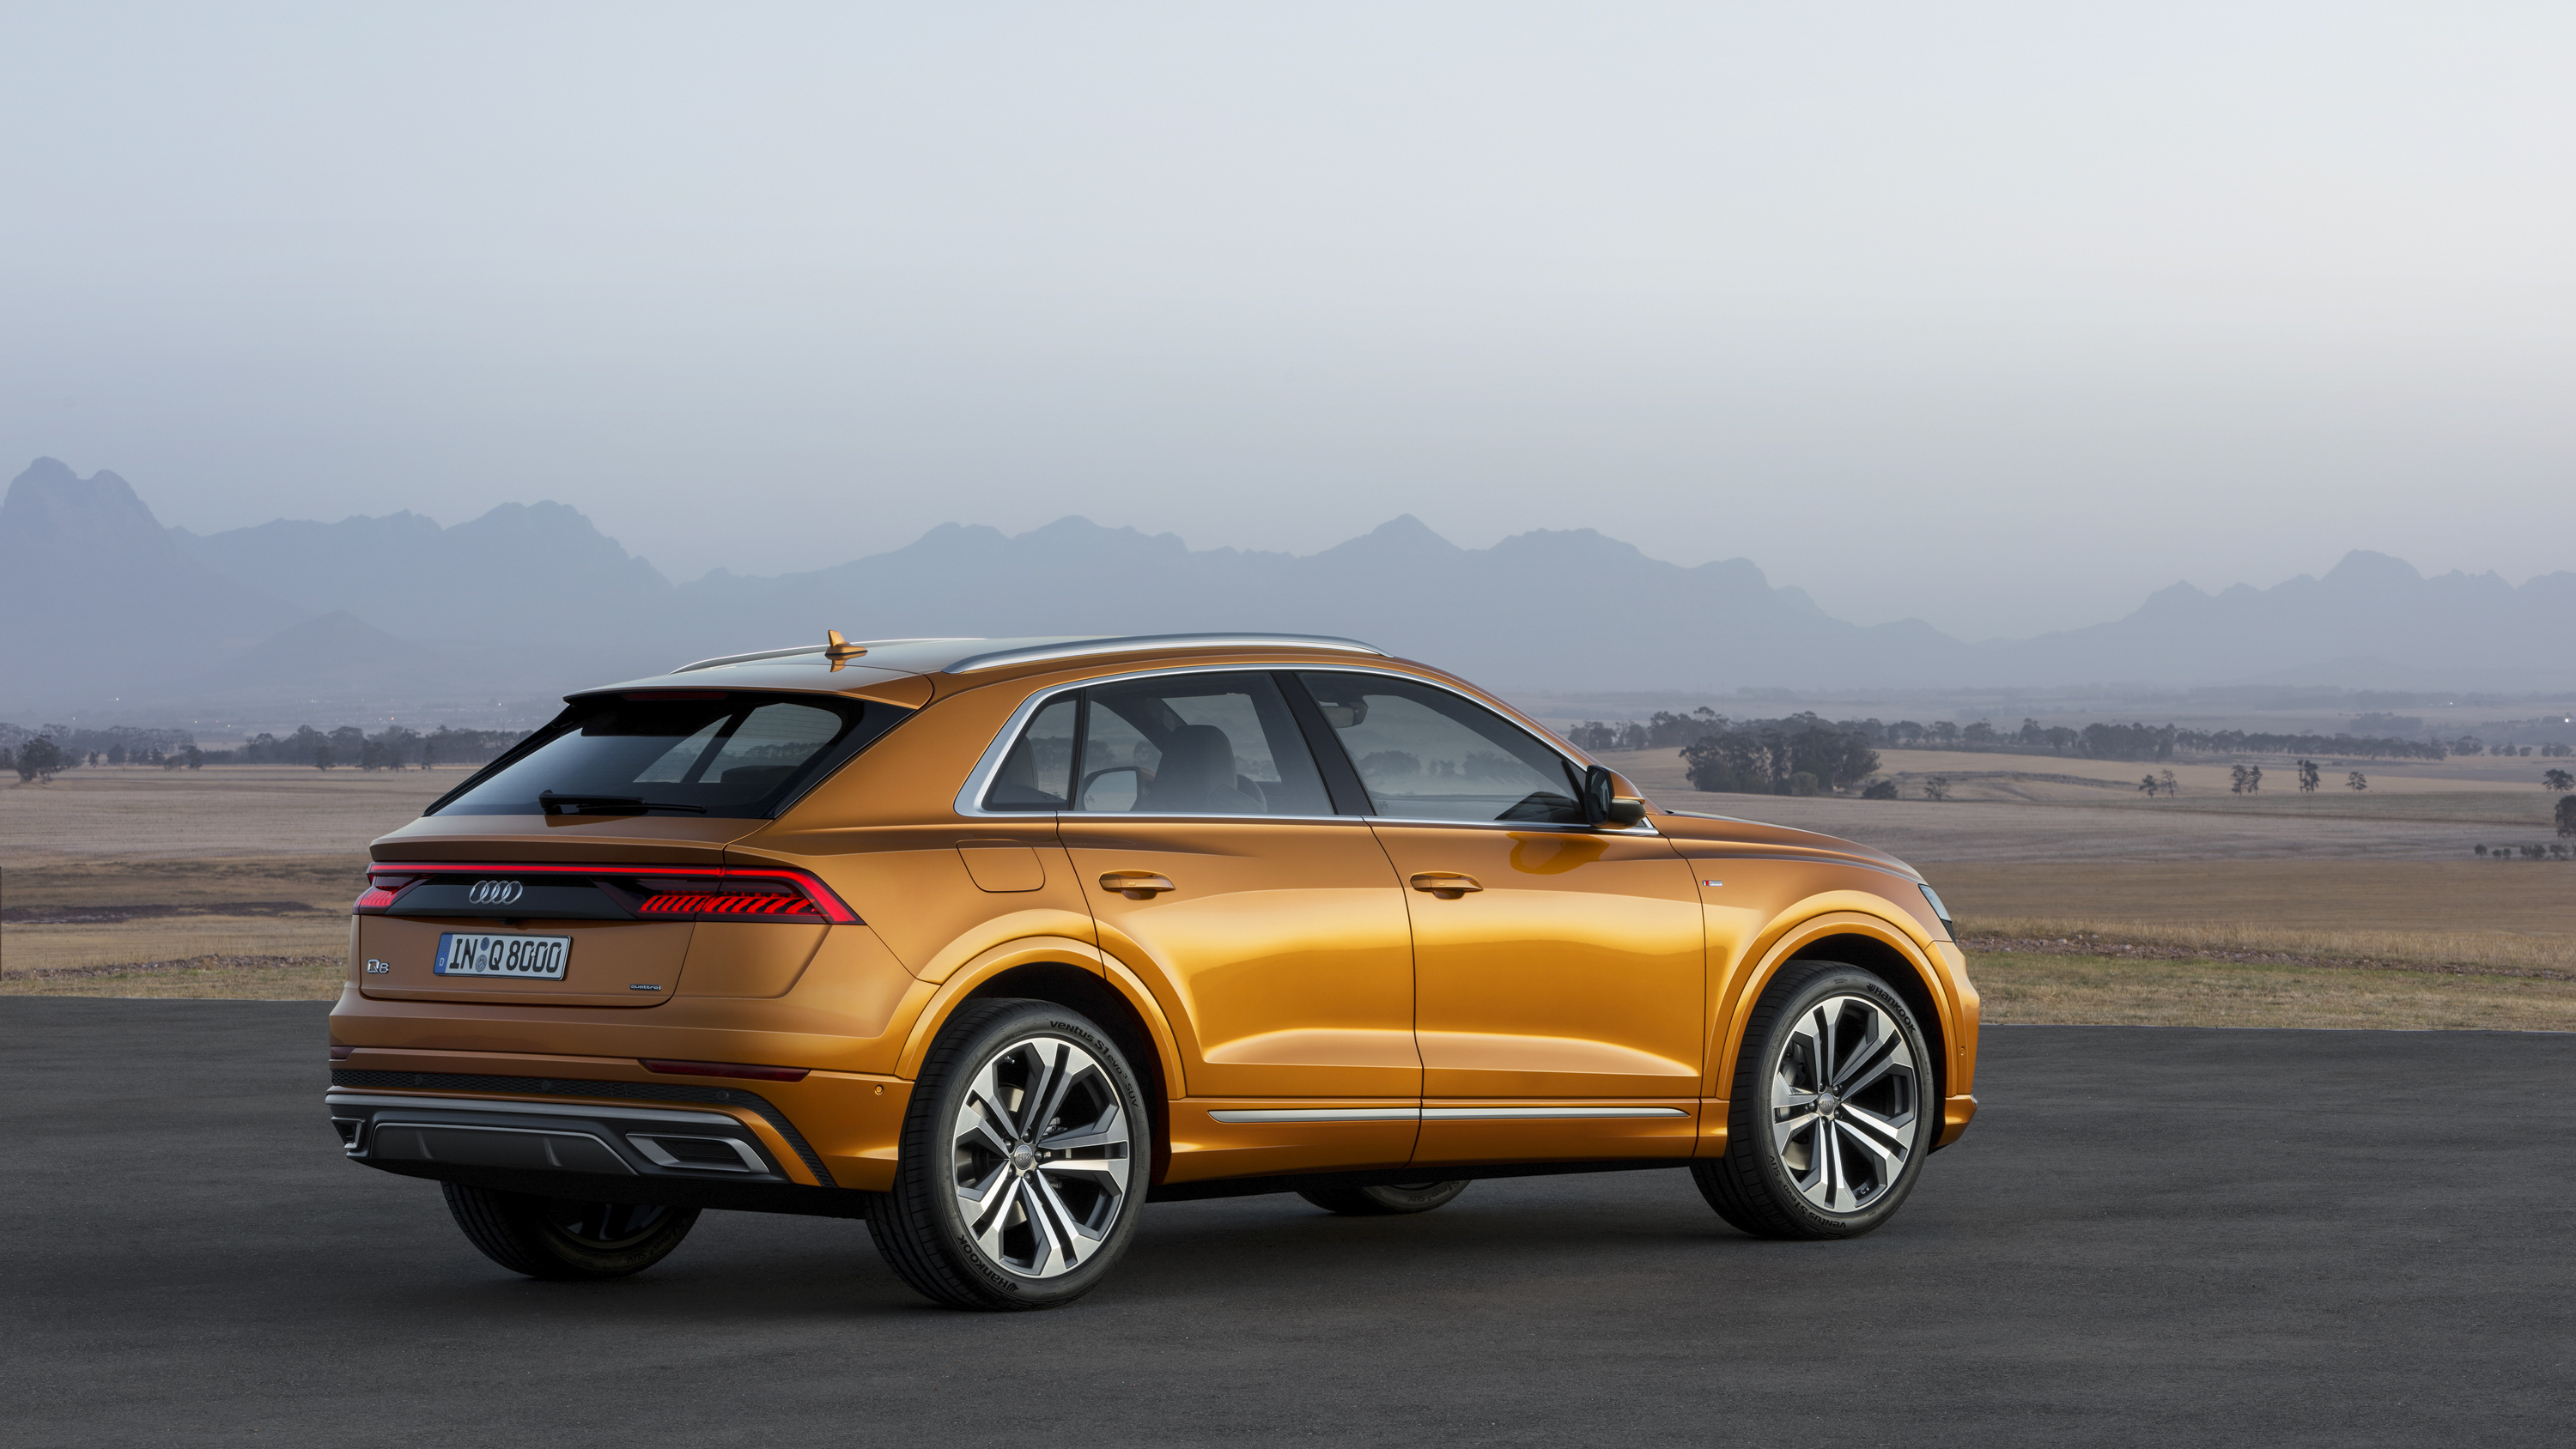 Wallpaper Of The Day: 2019 Audi Q8 | Top Speed